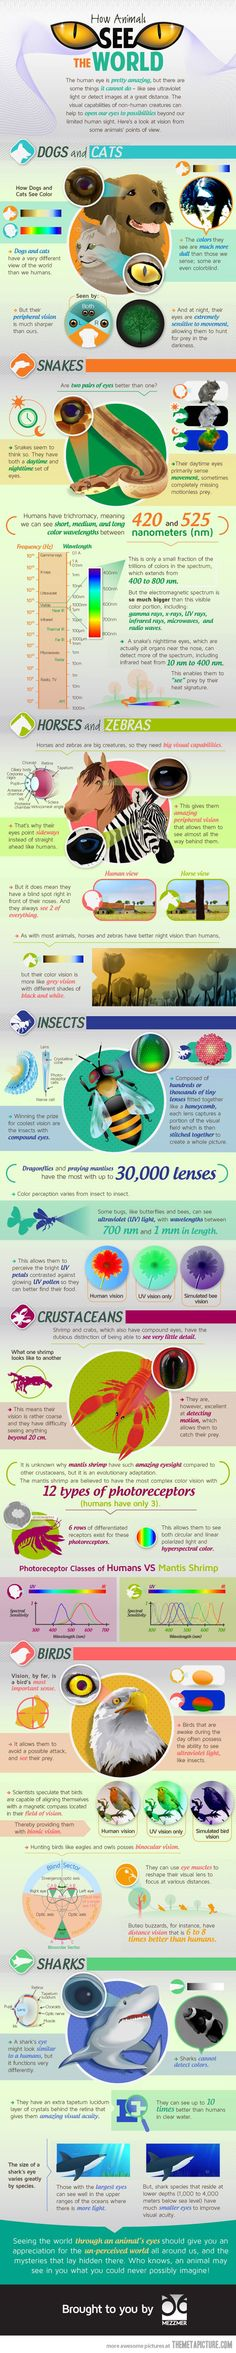 (infographic, humor, perspectives)   How Animals See the World - Health of ANIMALS